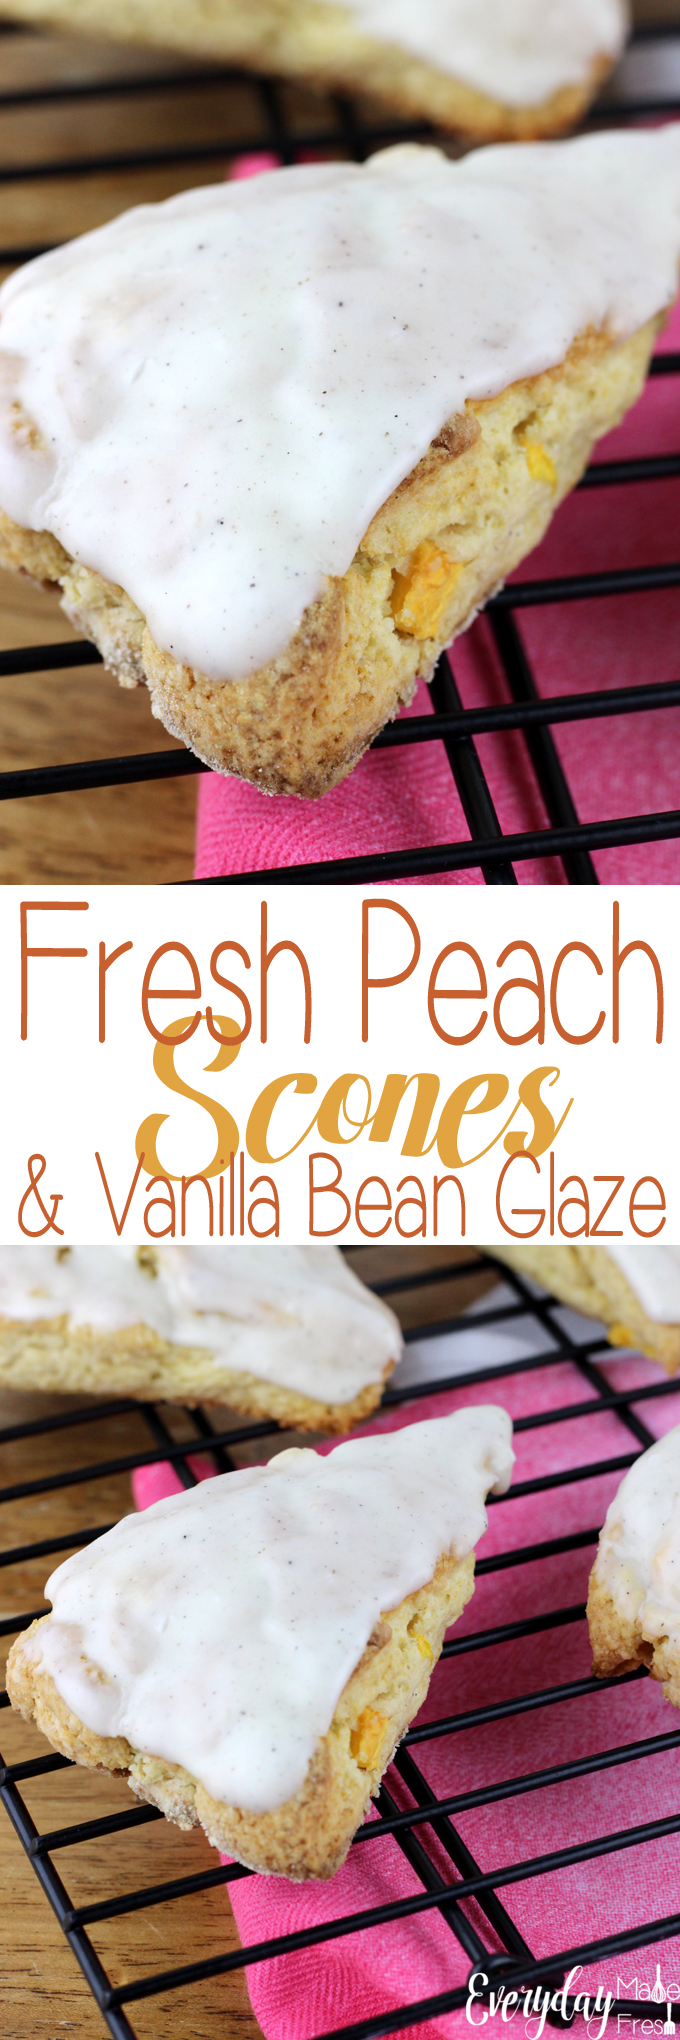 Nothing says summer like fresh peaches - and these Fresh Peach Scones & Vanilla Bean Glaze are the perfect summer breakfast or sweet treat! | EverydayMadeFresh.com